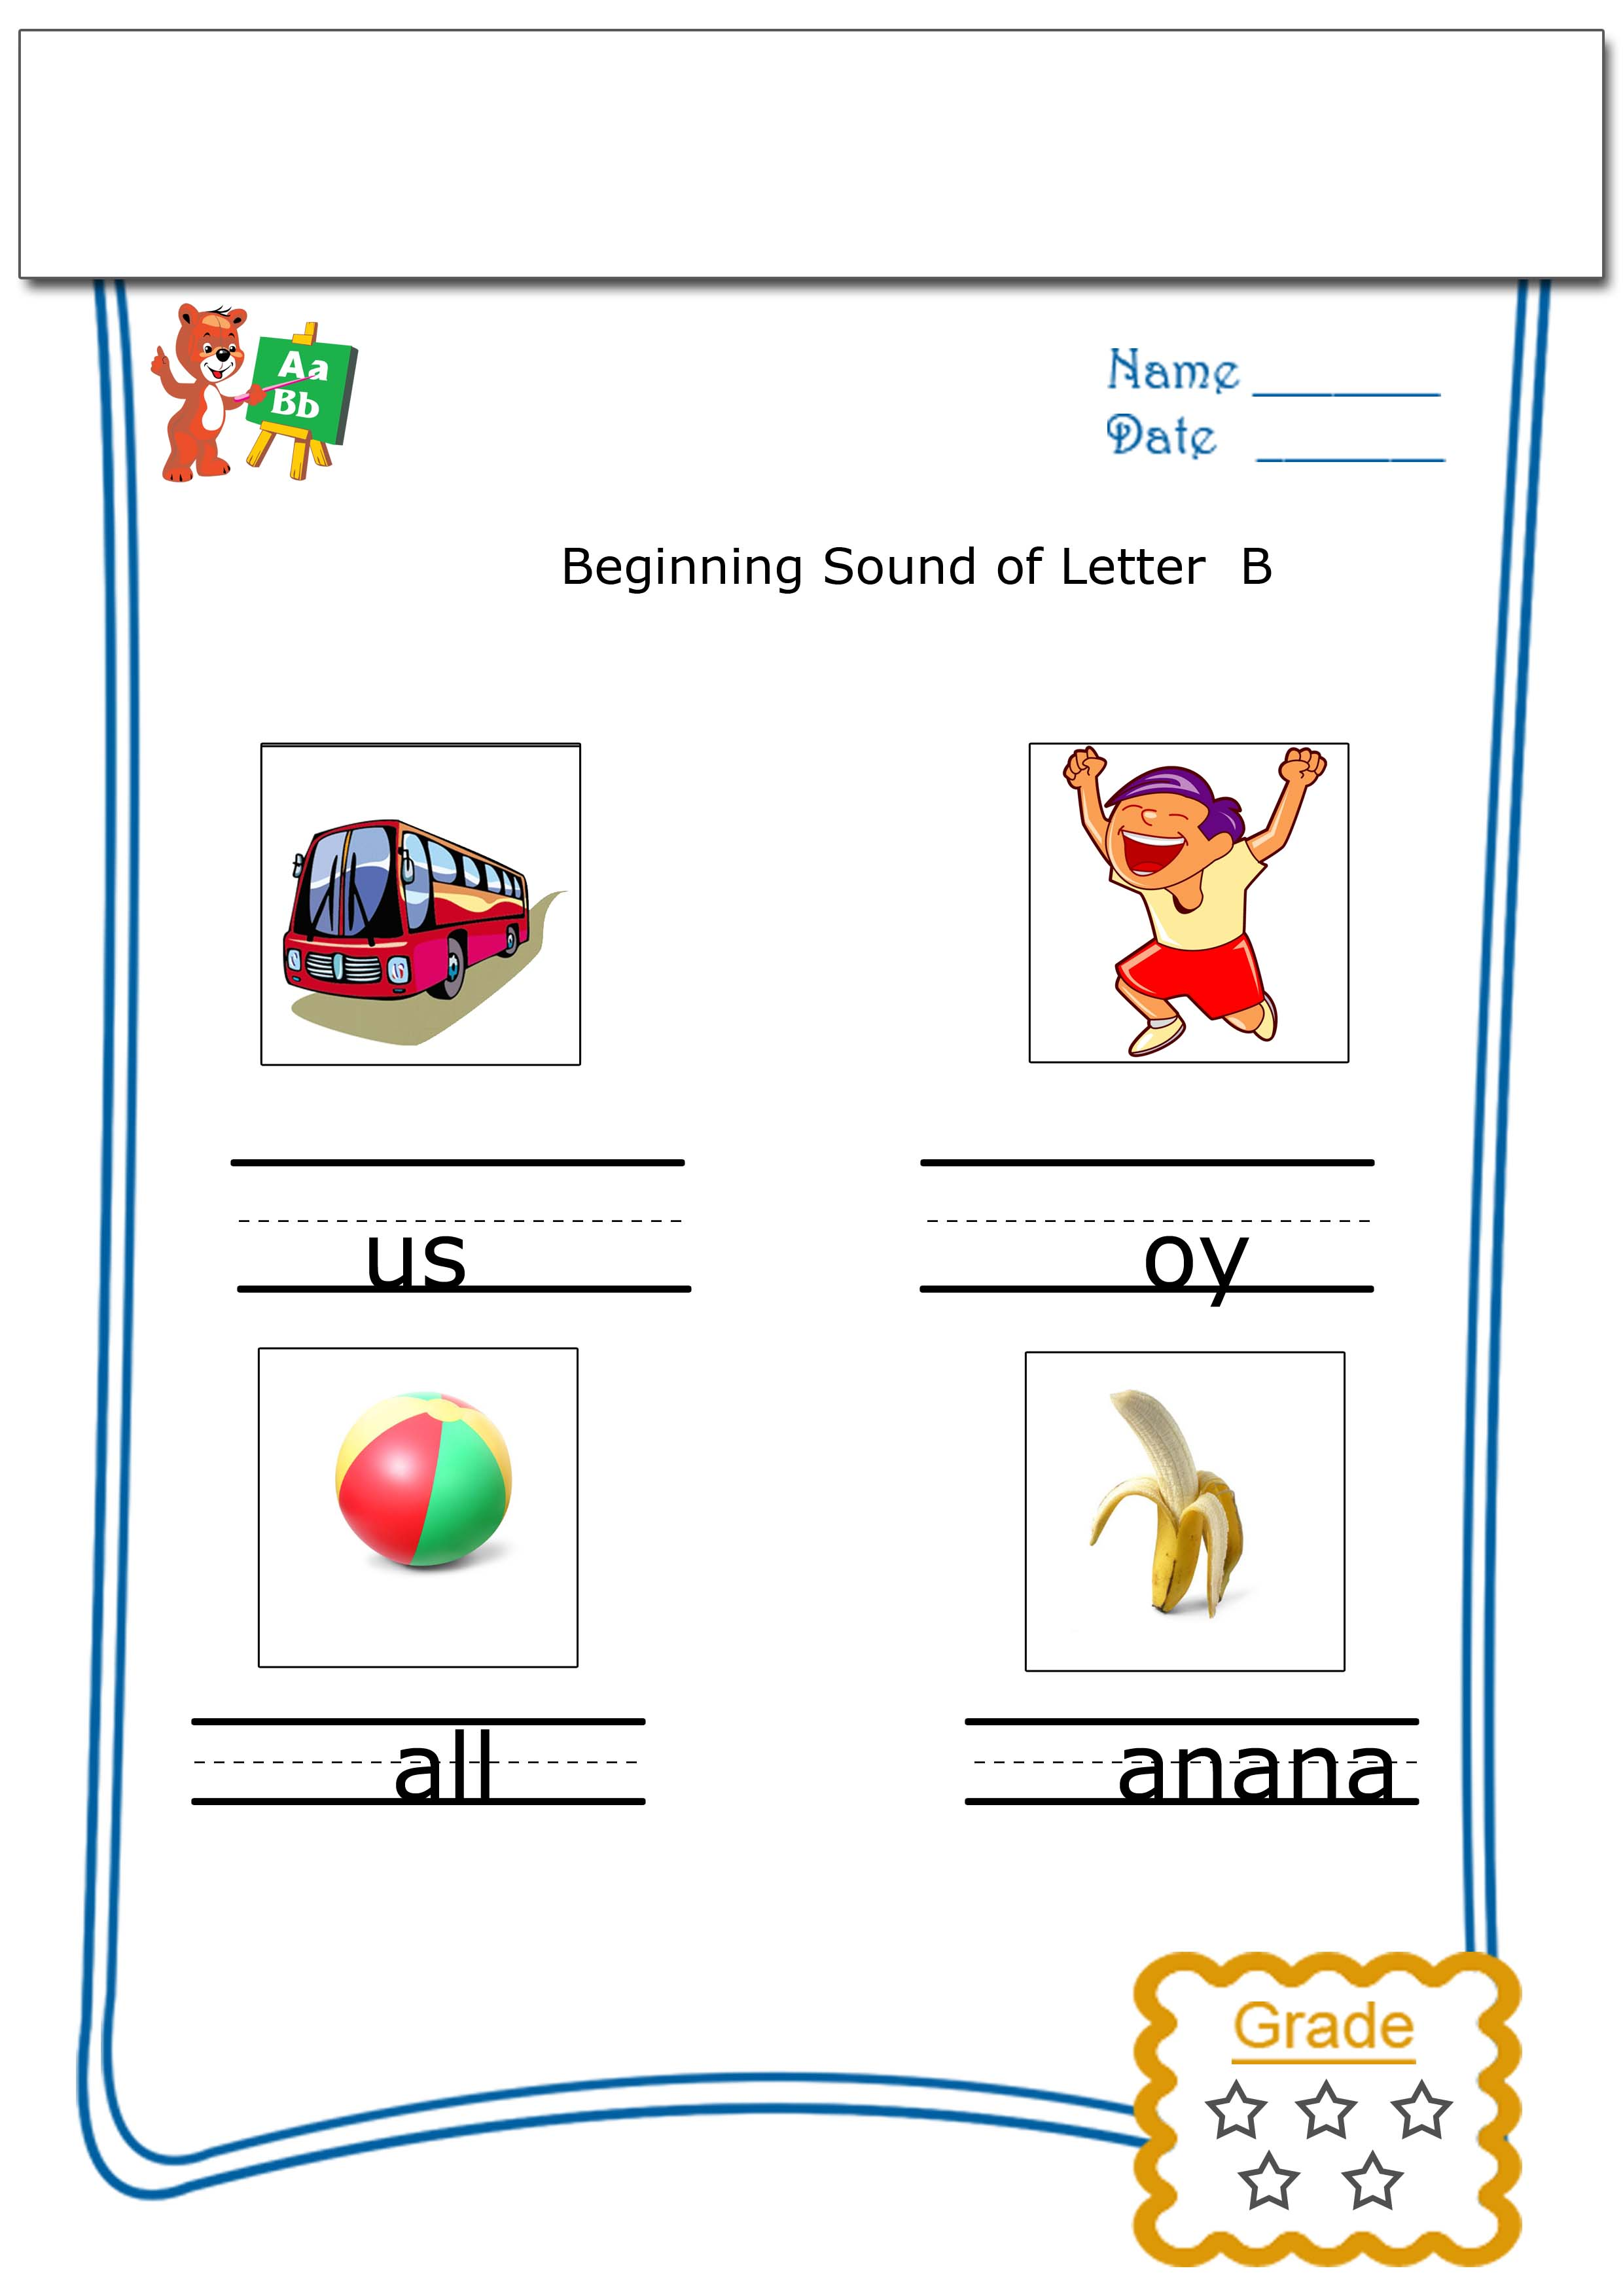 Kinder Garden: Free Printable Preschool Worksheets